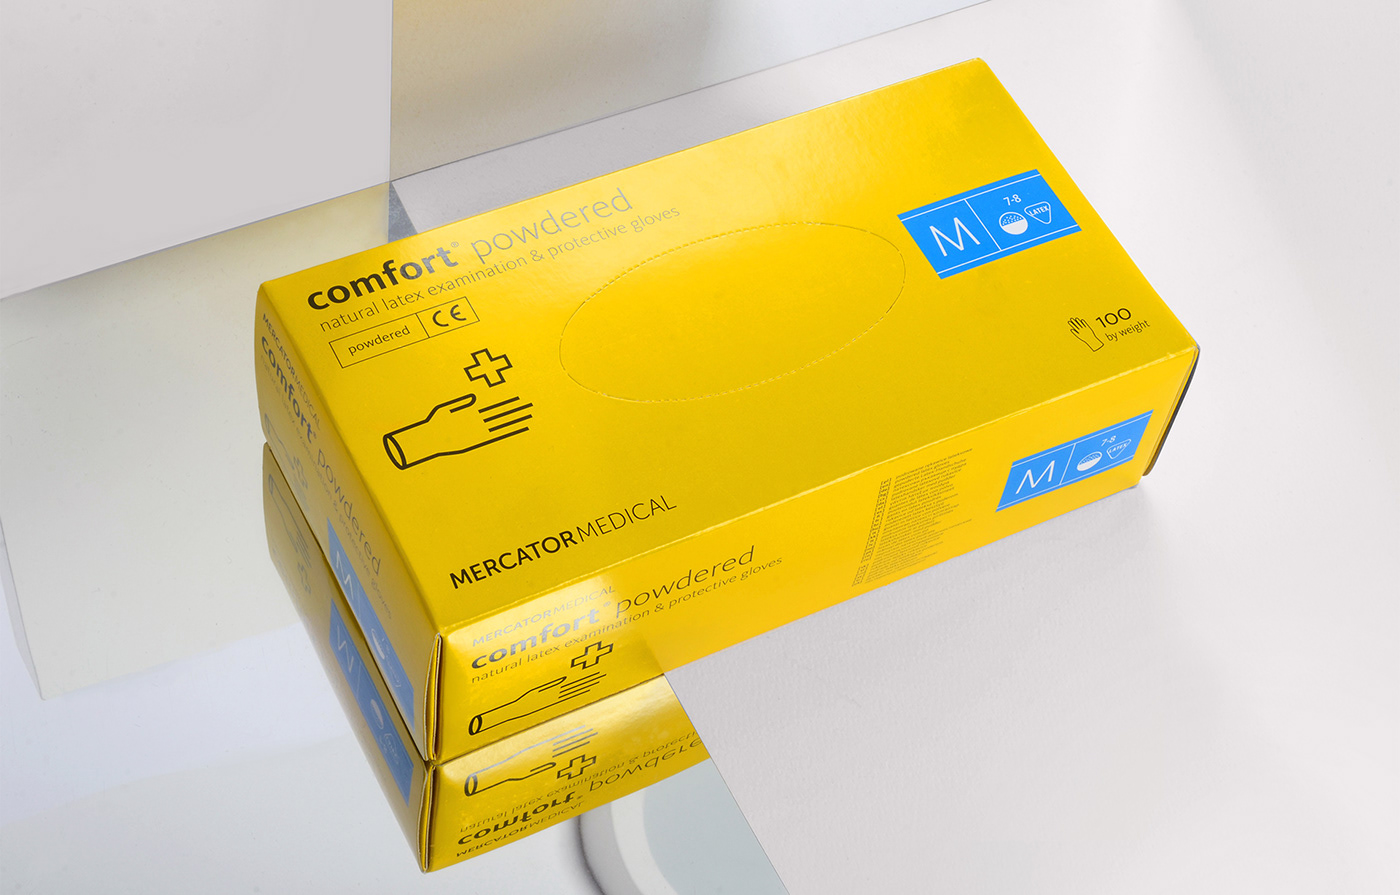 gloves Glove Packaging refresh medical Mercator Health specialist system manual